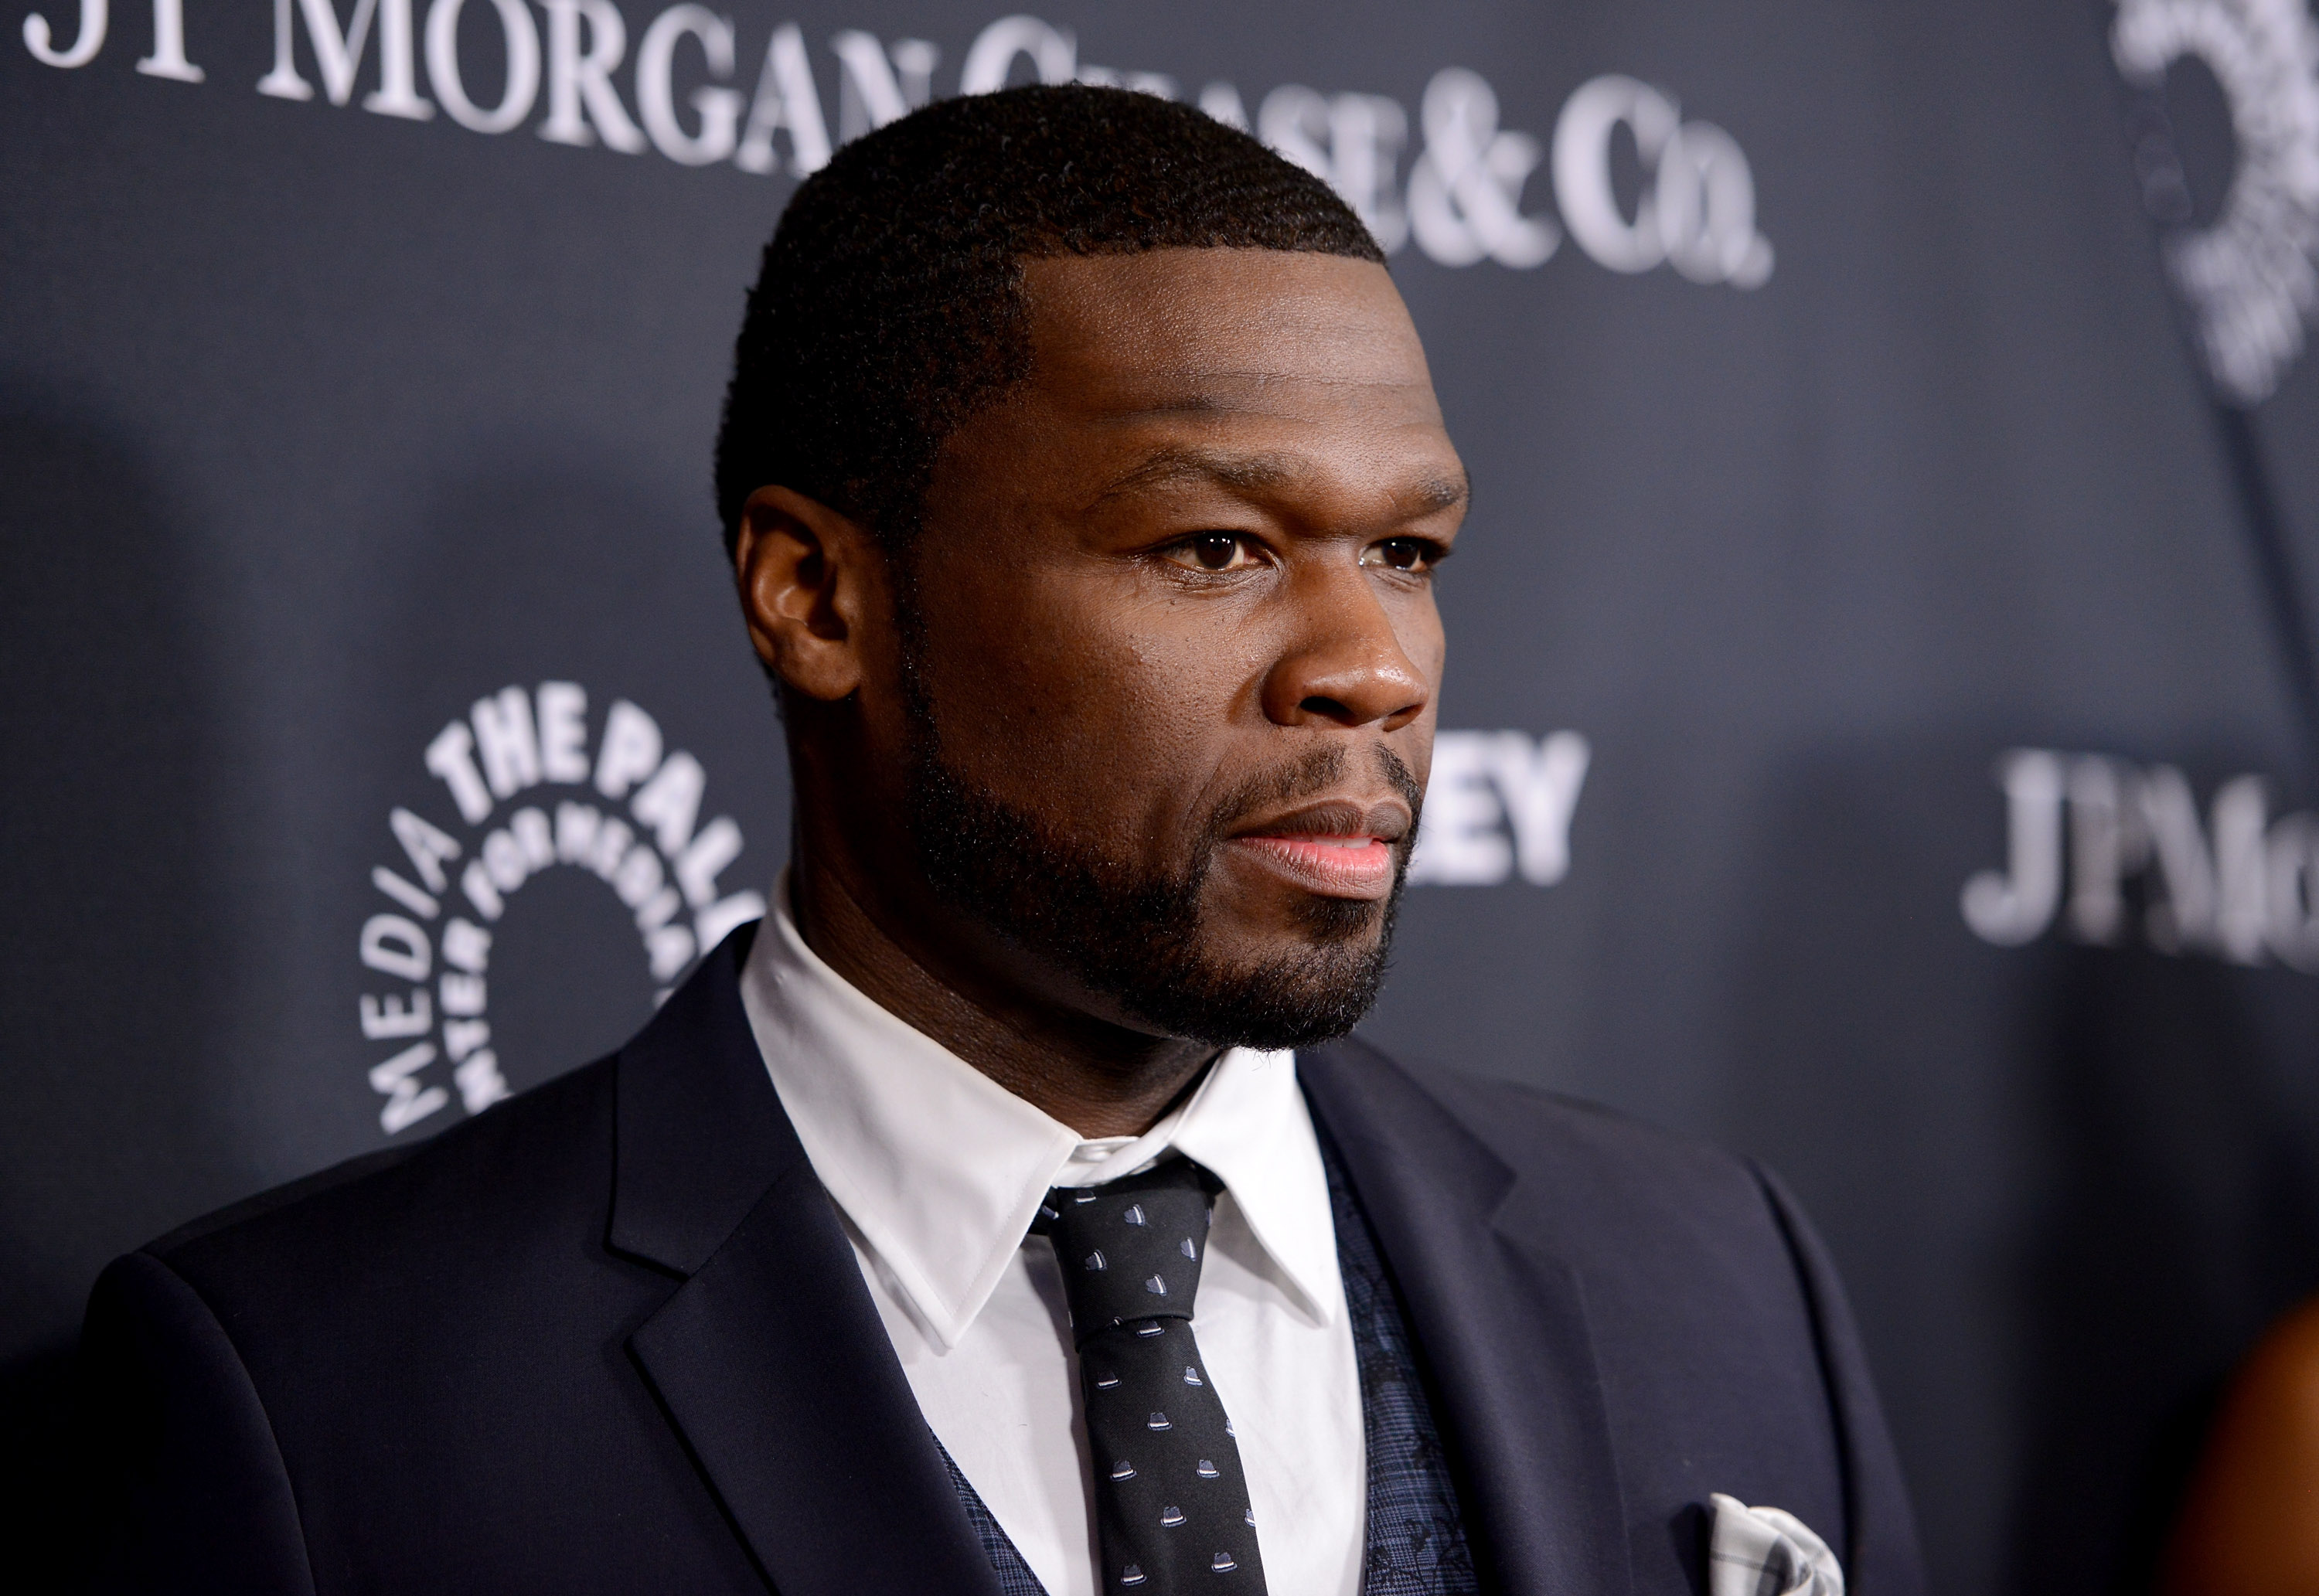 50 Cent in Los Angeles, on Oct. 26, 2015.